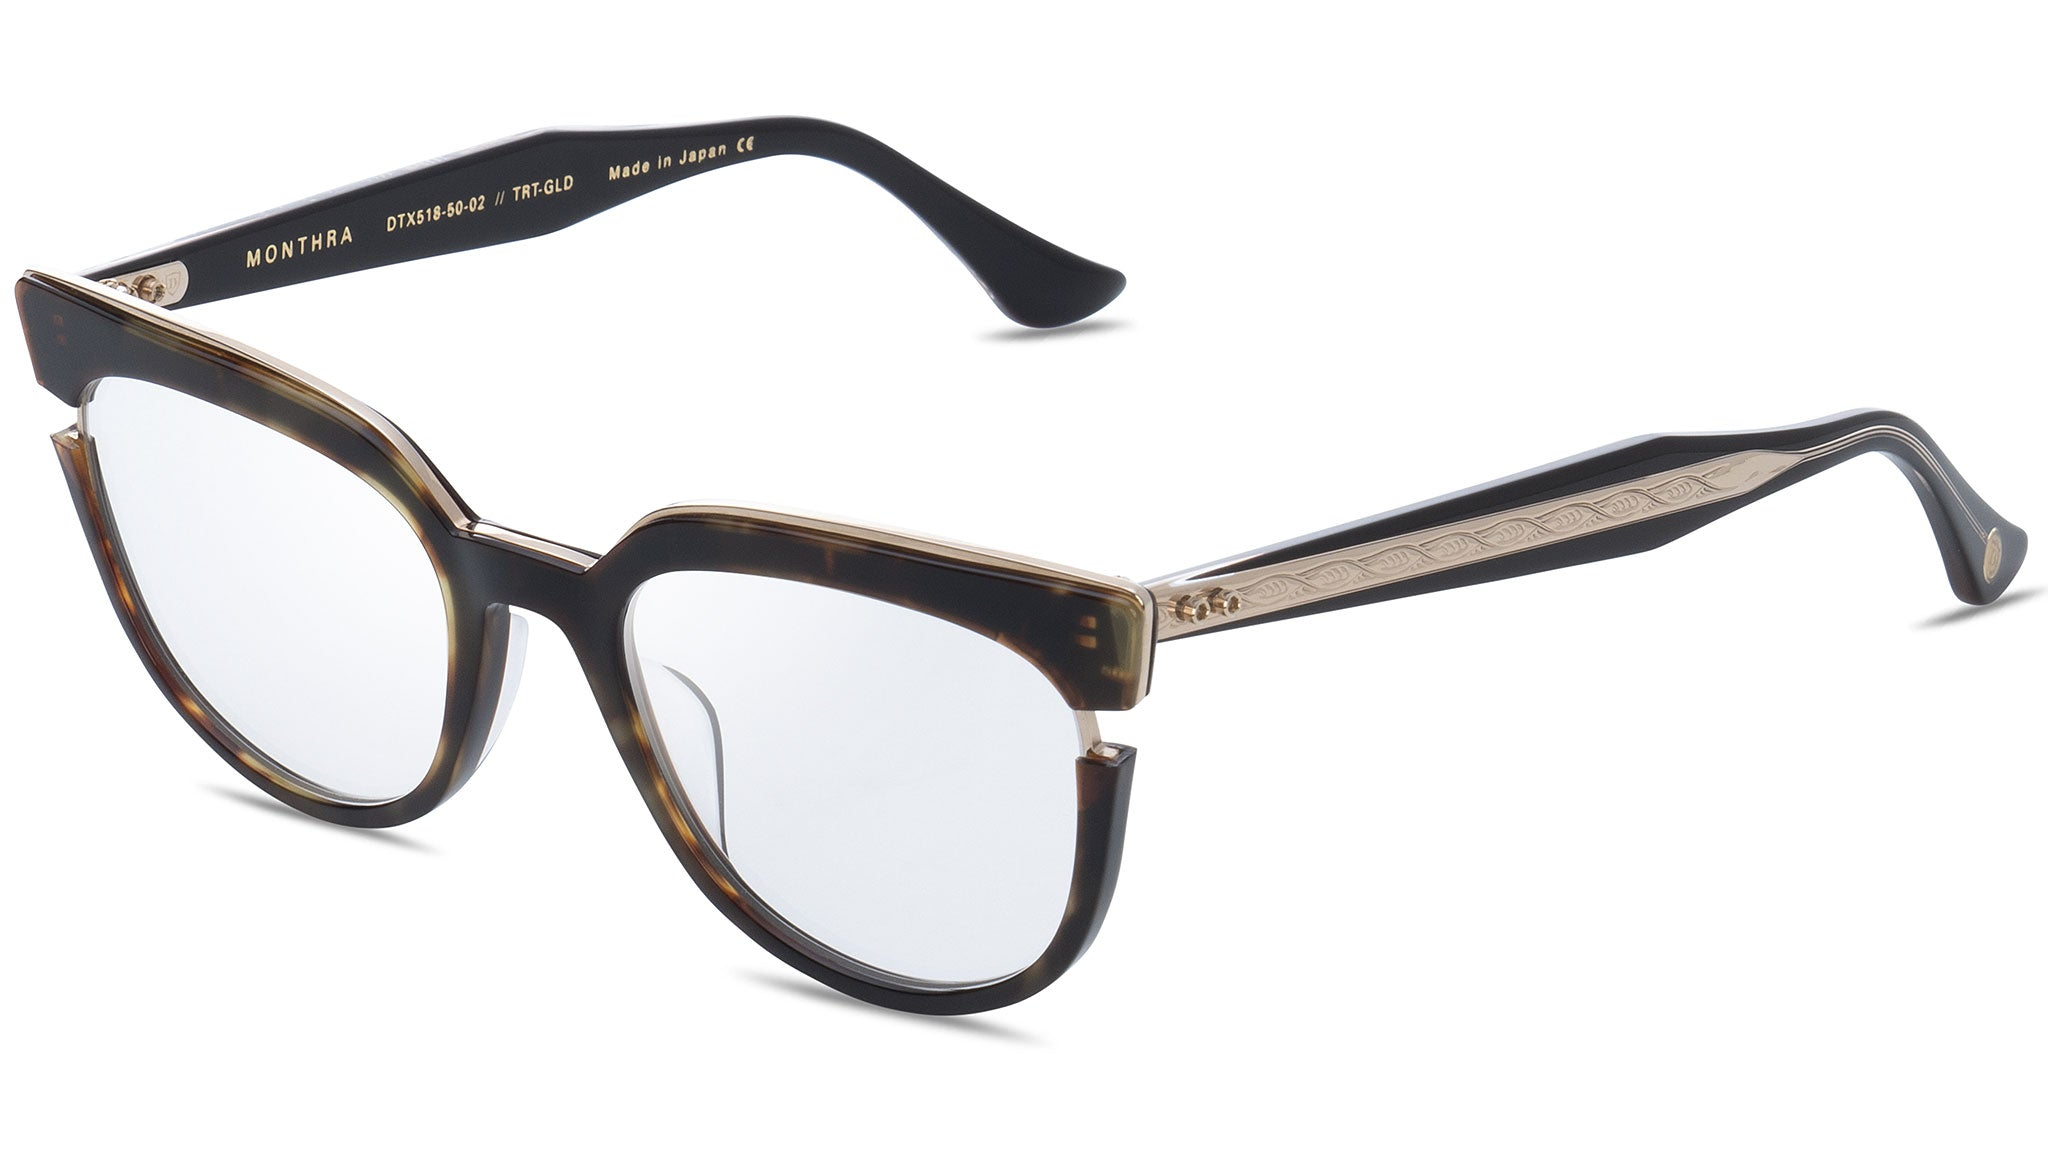 Monthra DTX 518 02 dark tortoise and gold